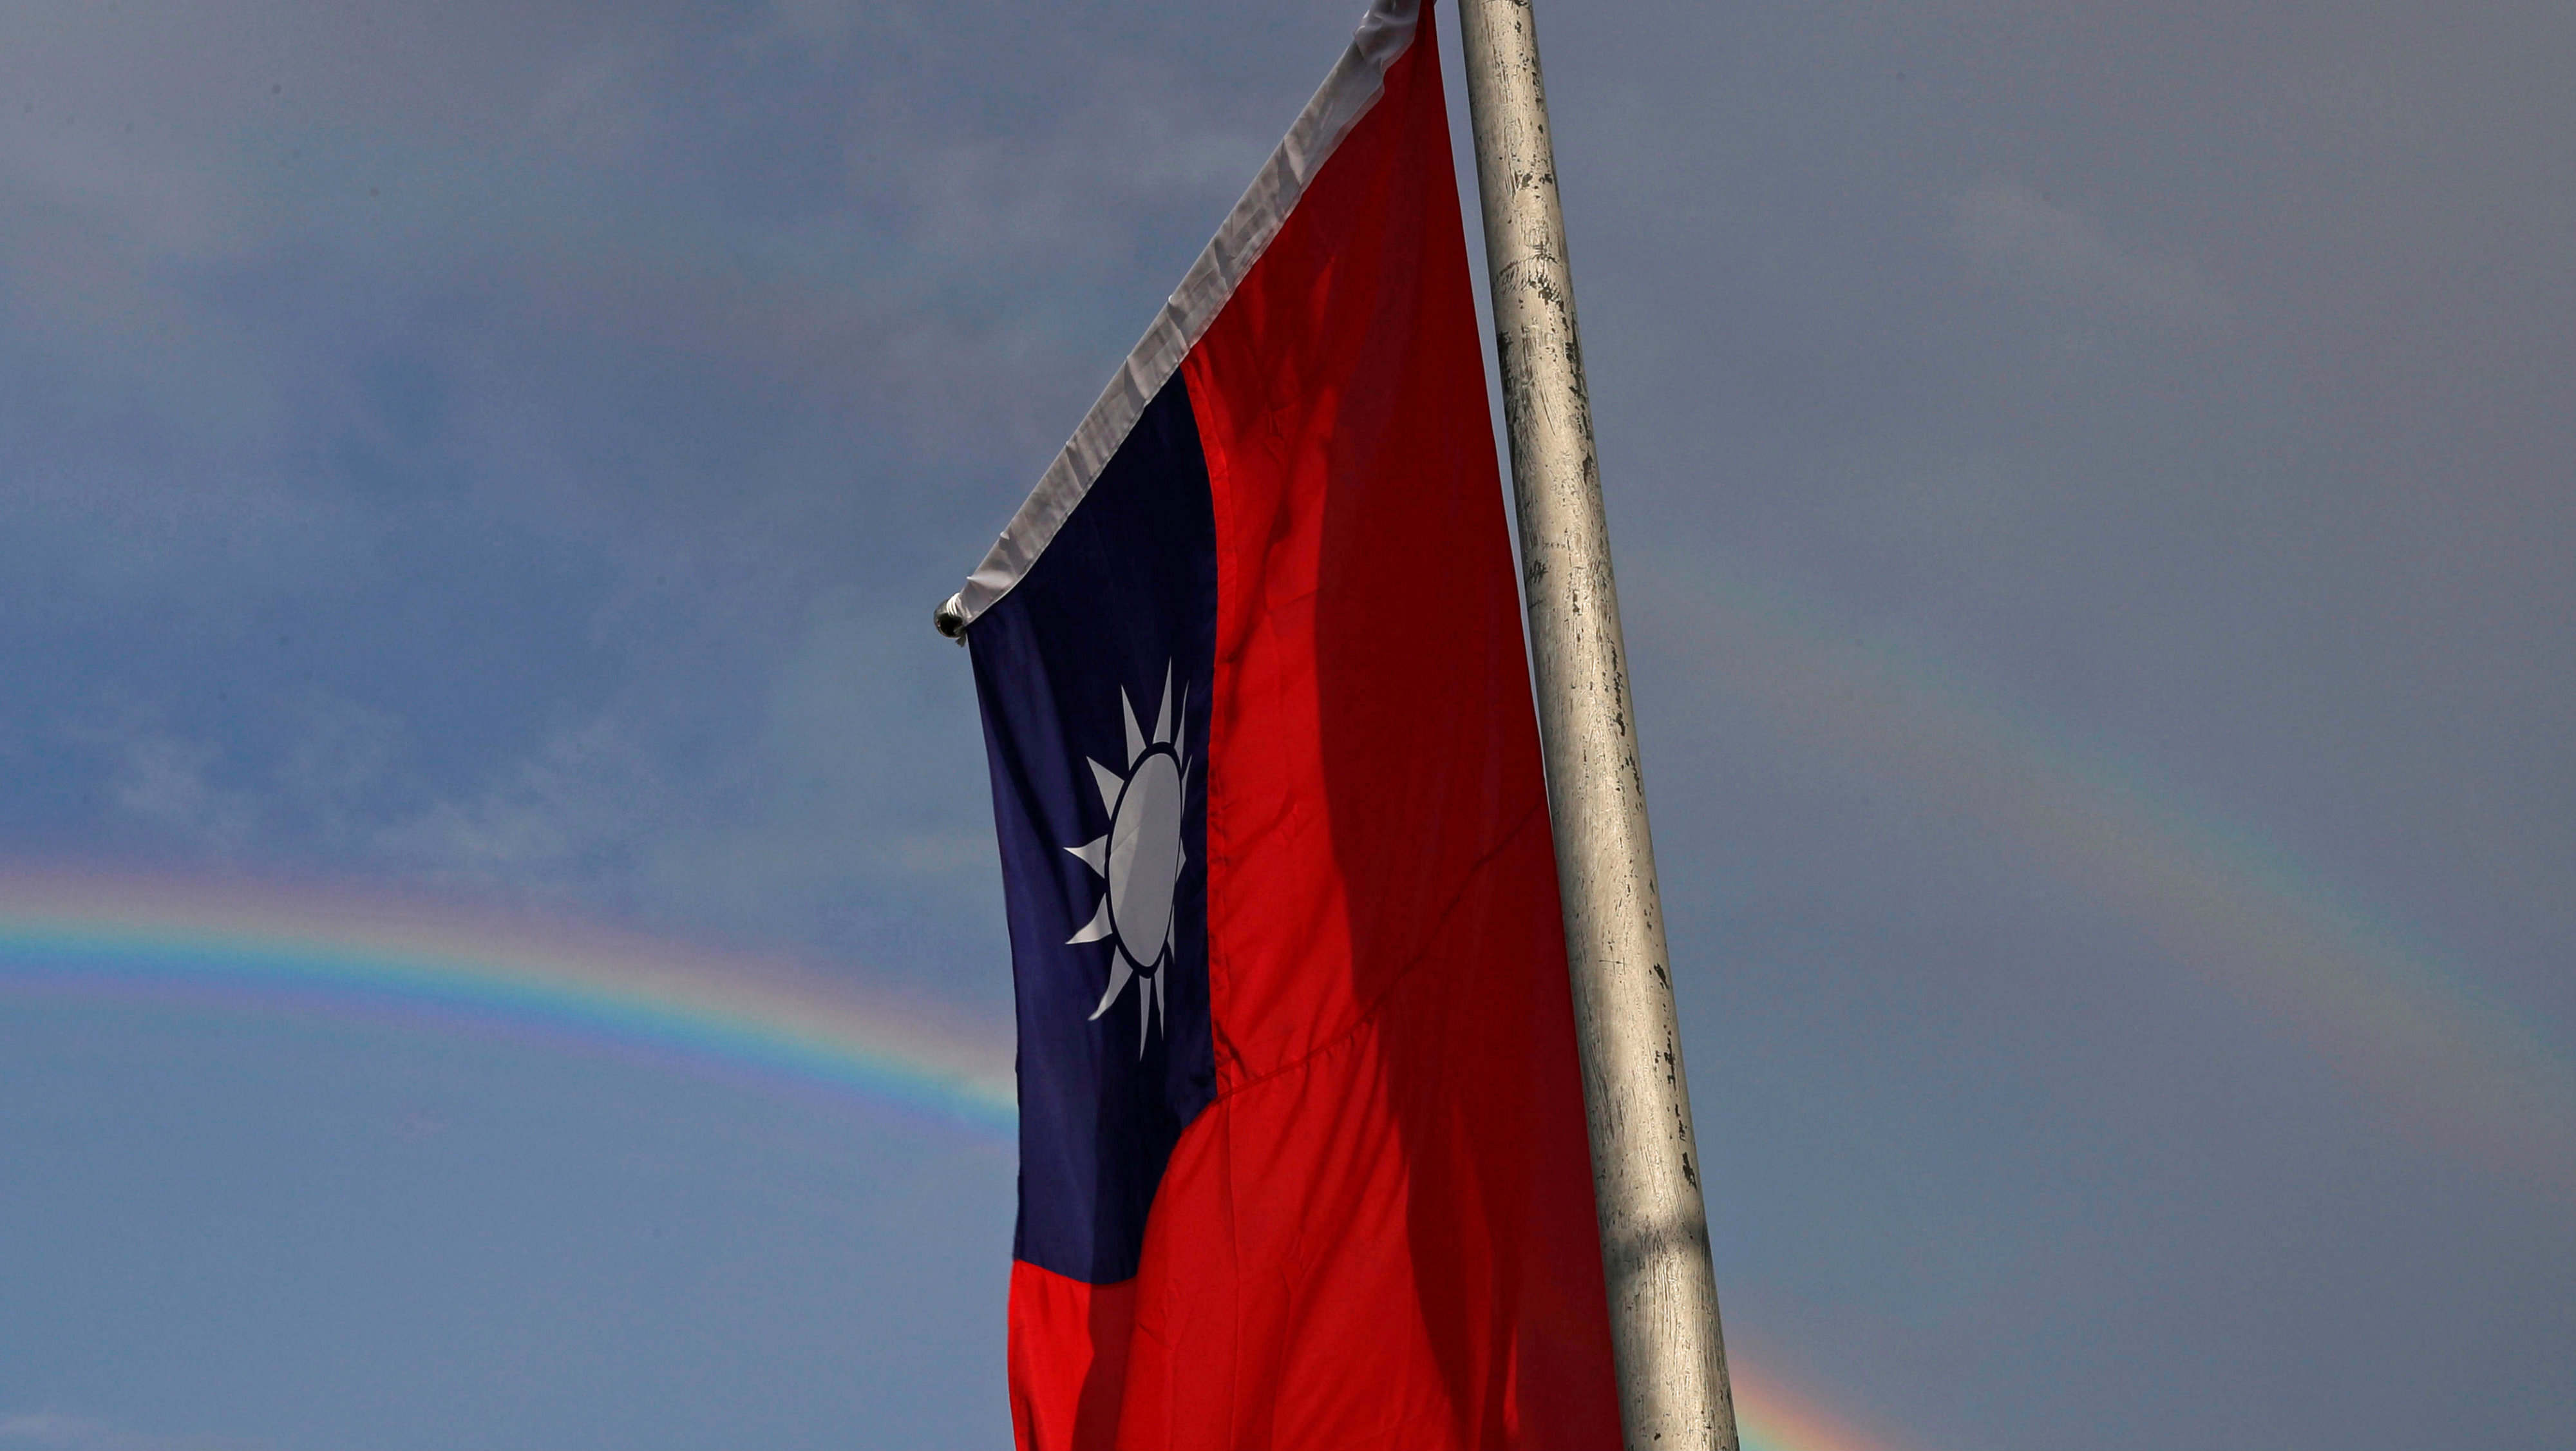 A double rainbow is seen behind Taiwanese flag during the National Day celebrations in Taipei, Taiwan